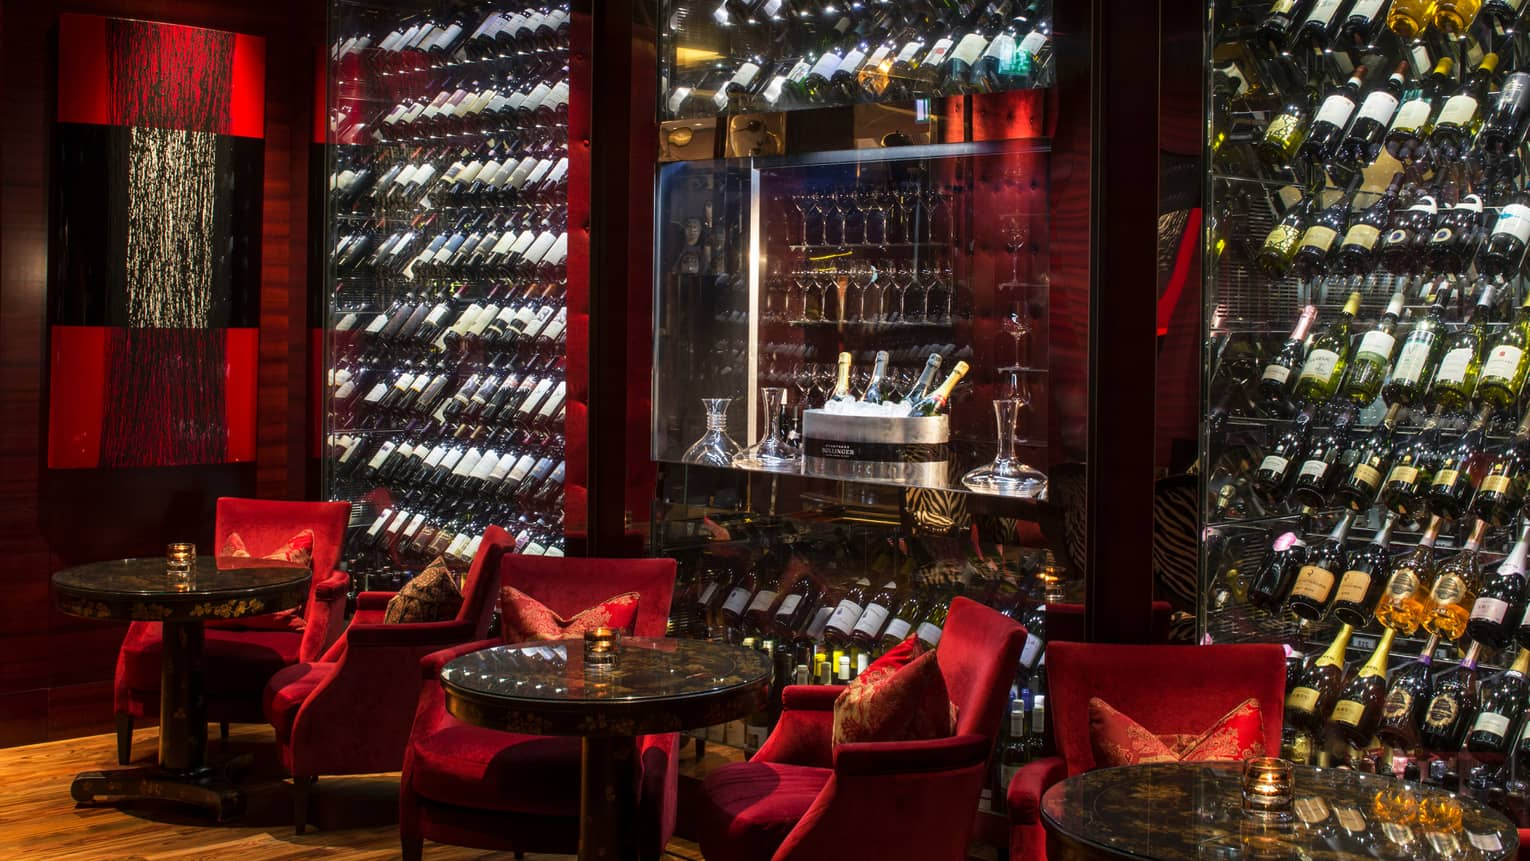 Amaranto Bar red velvet lounge chairs, large glass cellars with bottles, Champagne ice bucket